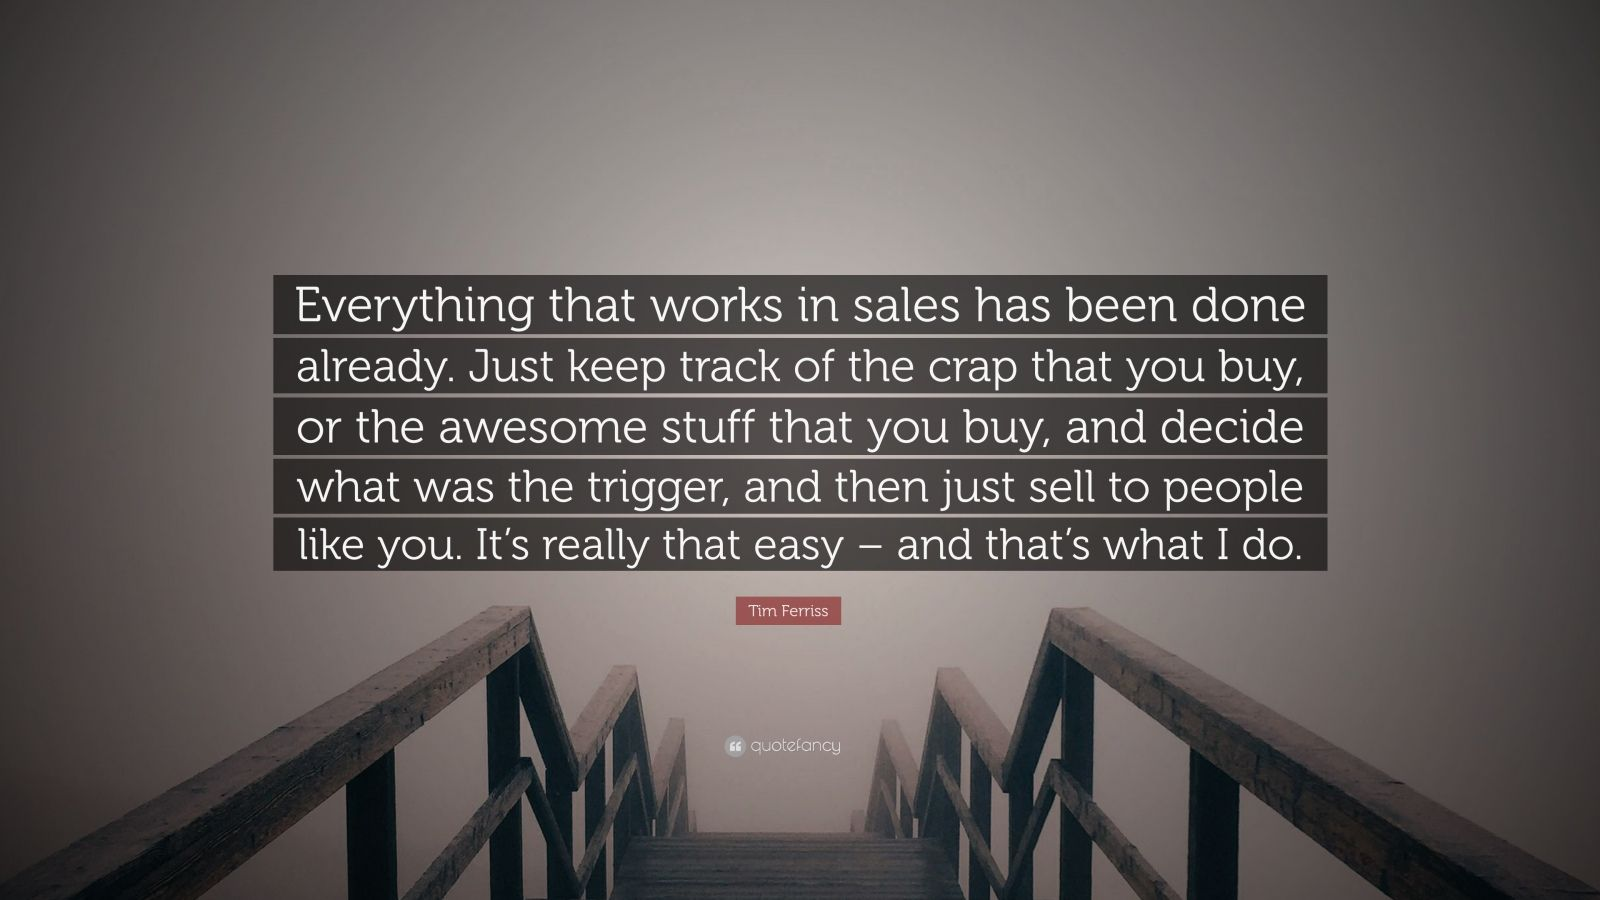 """Tim Ferriss Quote: """"Everything that works in sales has been done already. Just keep track of the crap that you buy, or the awesome stuff that you buy, and decide what was the trigger, and then just sell to people like you. It's really that easy – and that's what I do."""""""